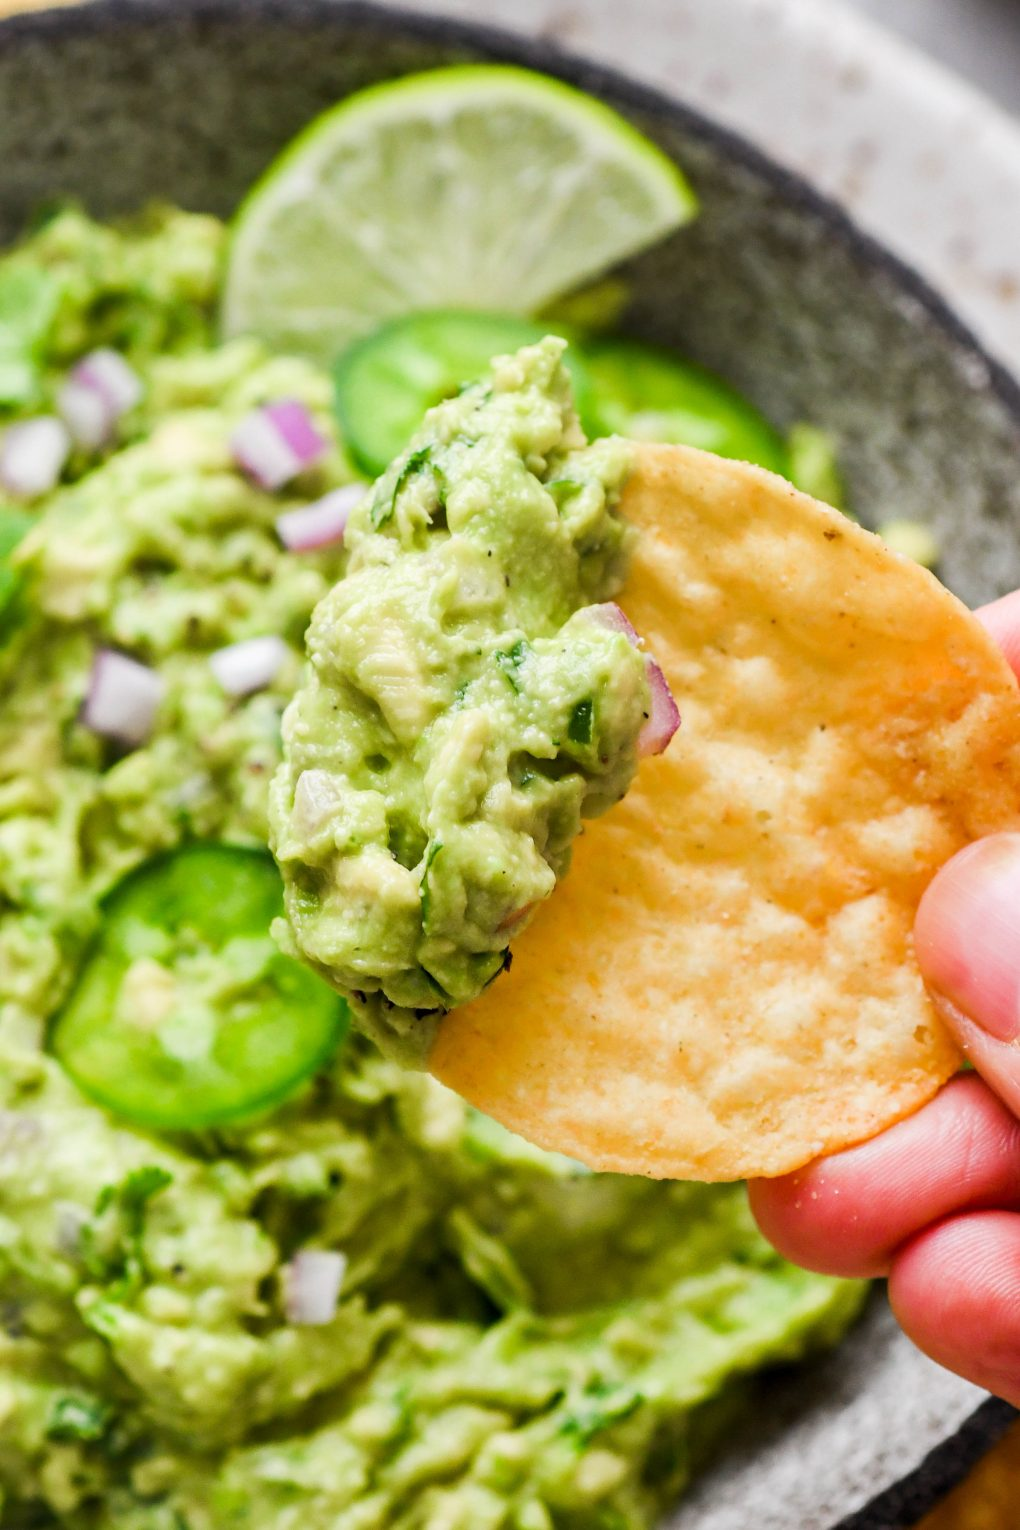 Close up shot of a hand holding a round yellow tortilla chip with guacamole on the chip - over a bowl of more guacamole.